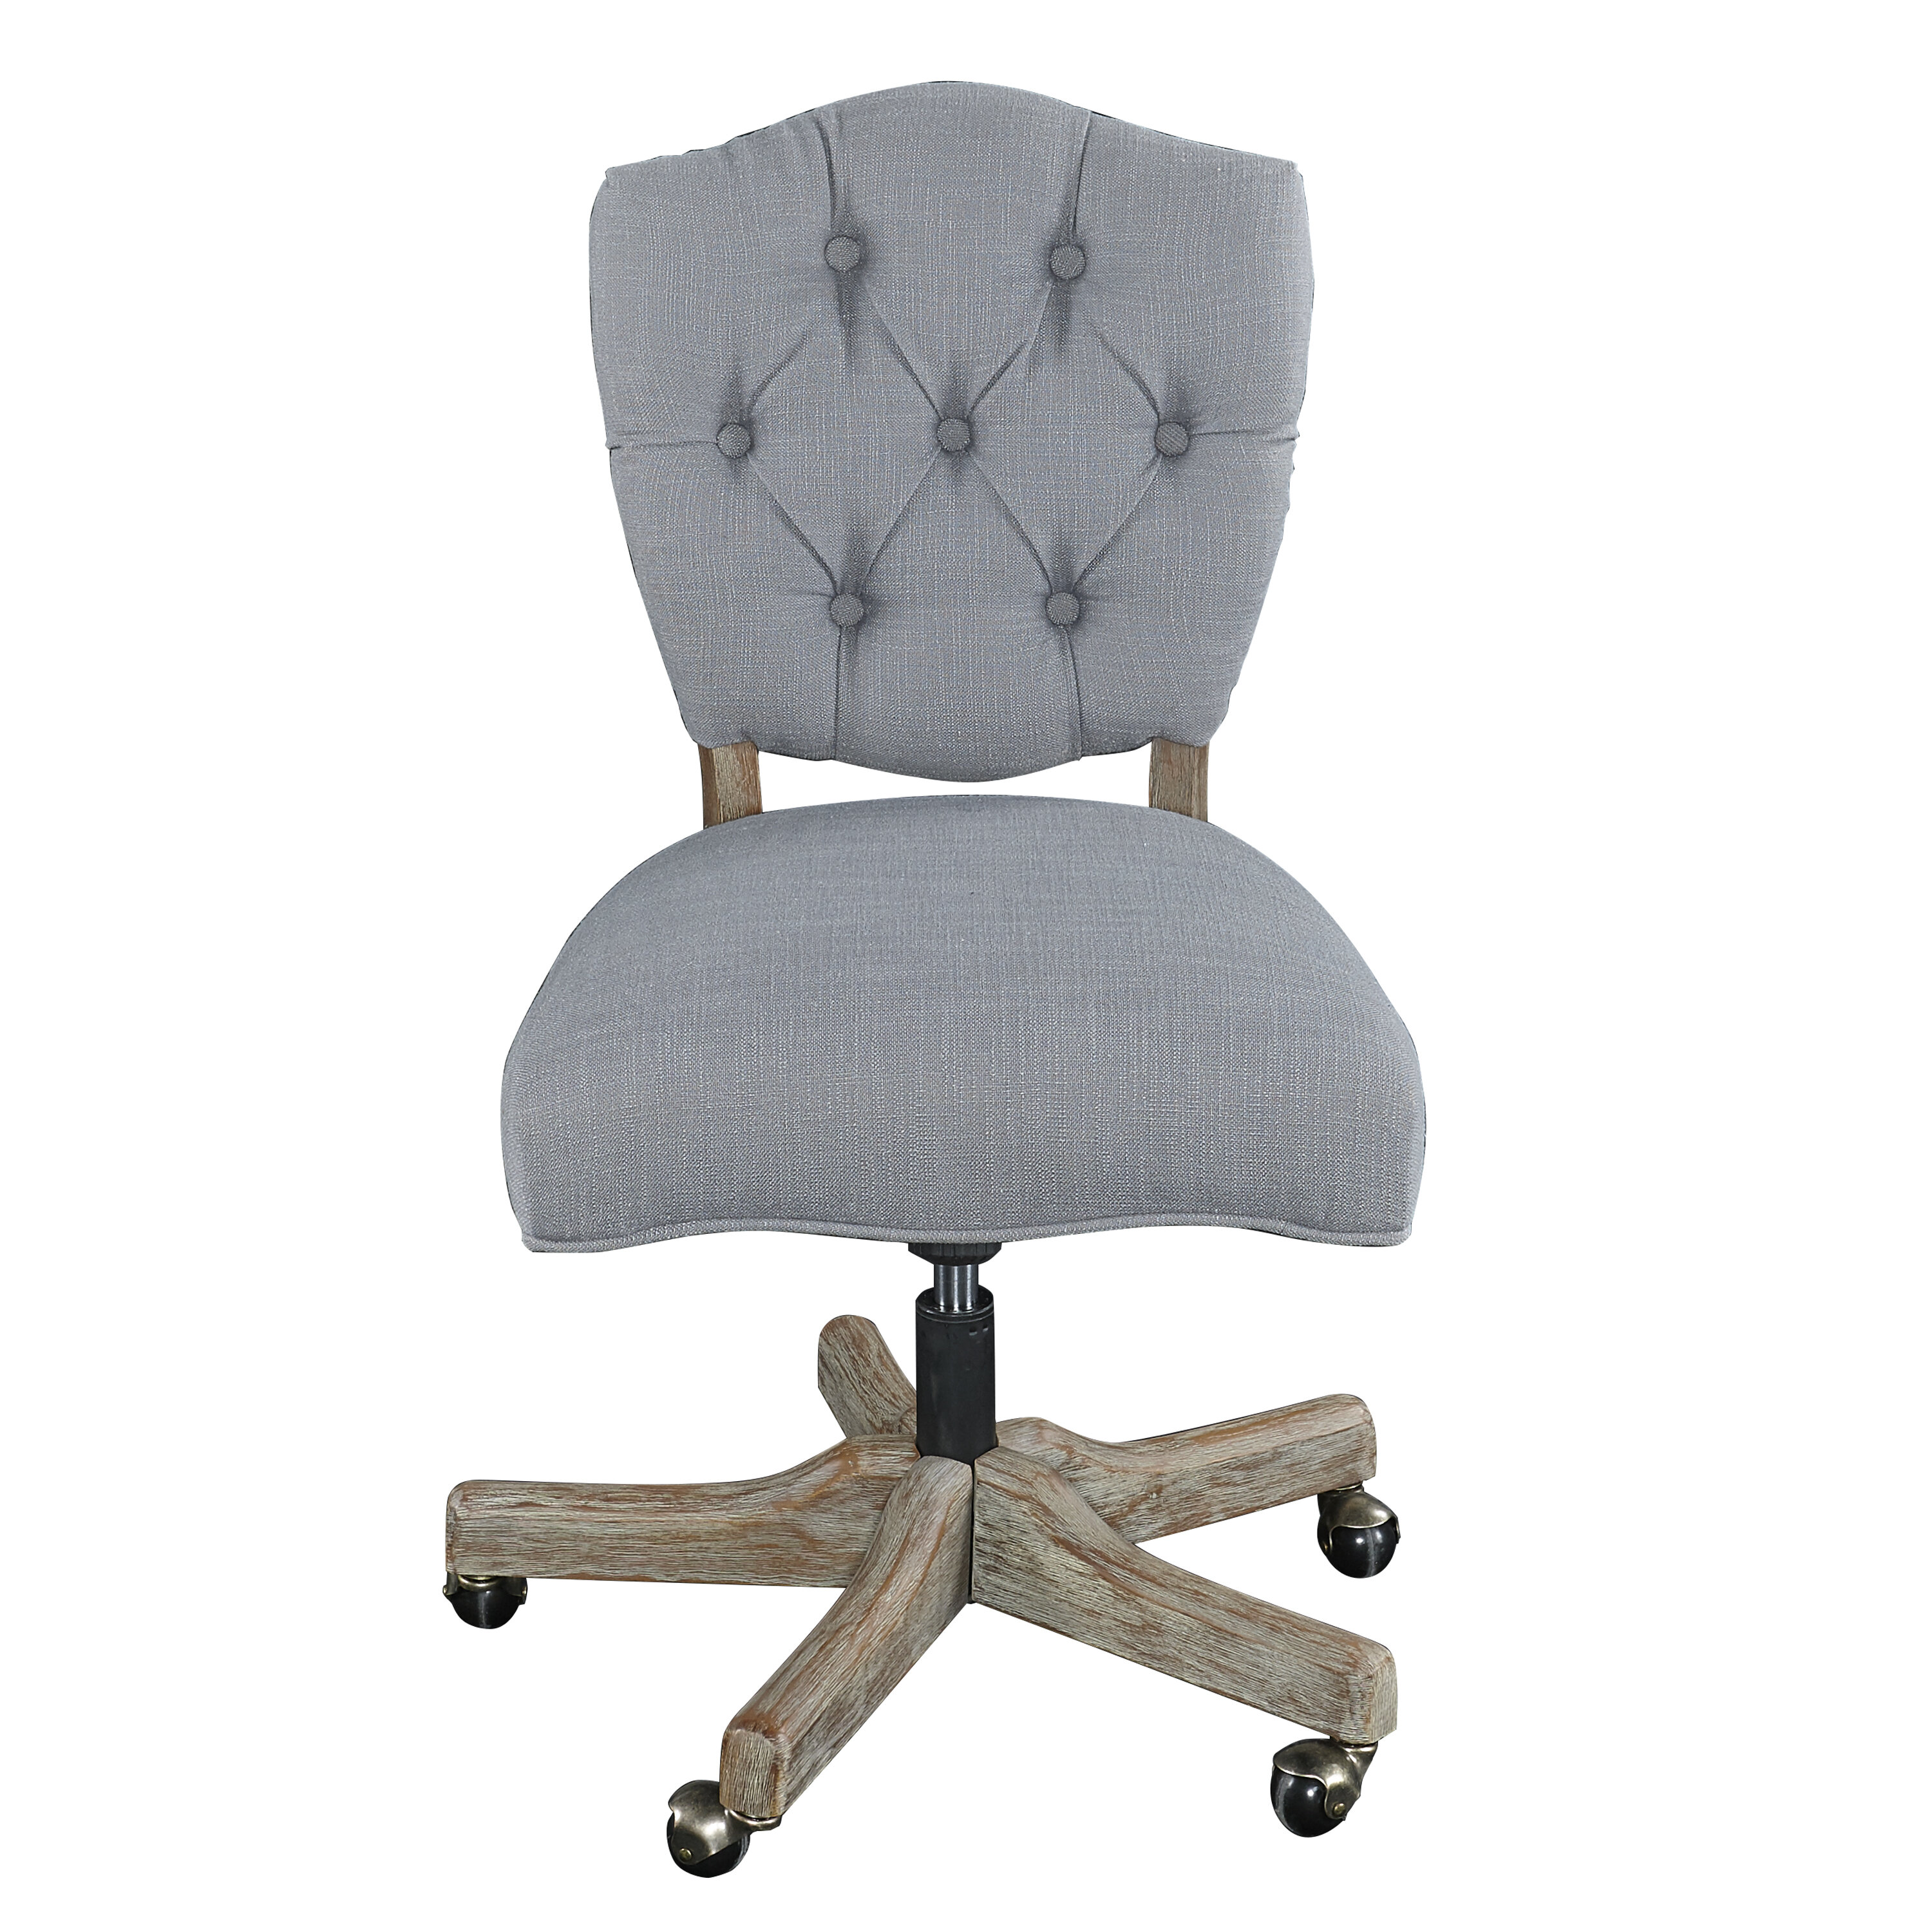 Super Suzanne Office Chair Pabps2019 Chair Design Images Pabps2019Com